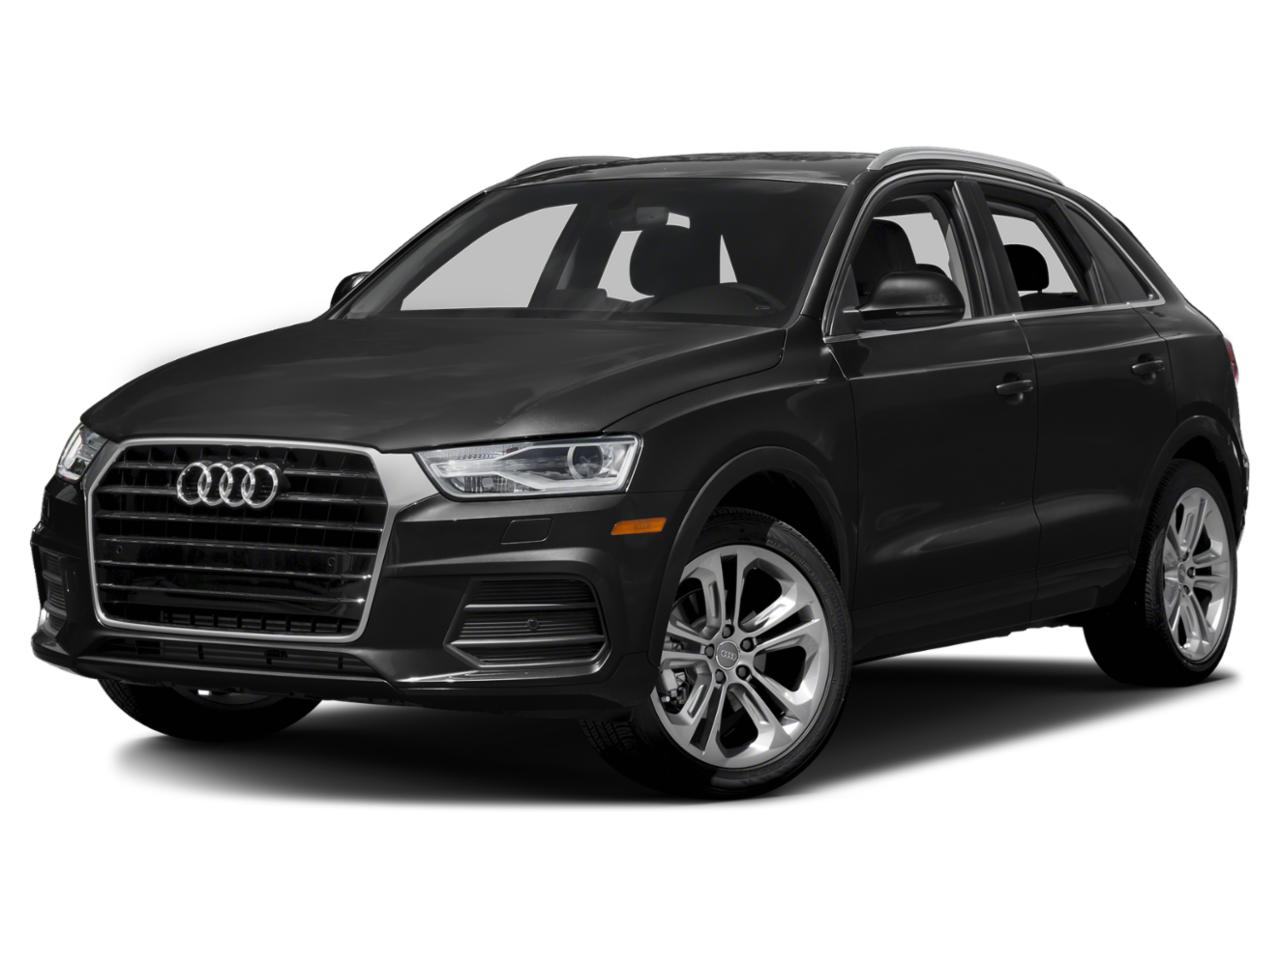 2018 Audi Q3 Vehicle Photo in Bowie, MD 20716